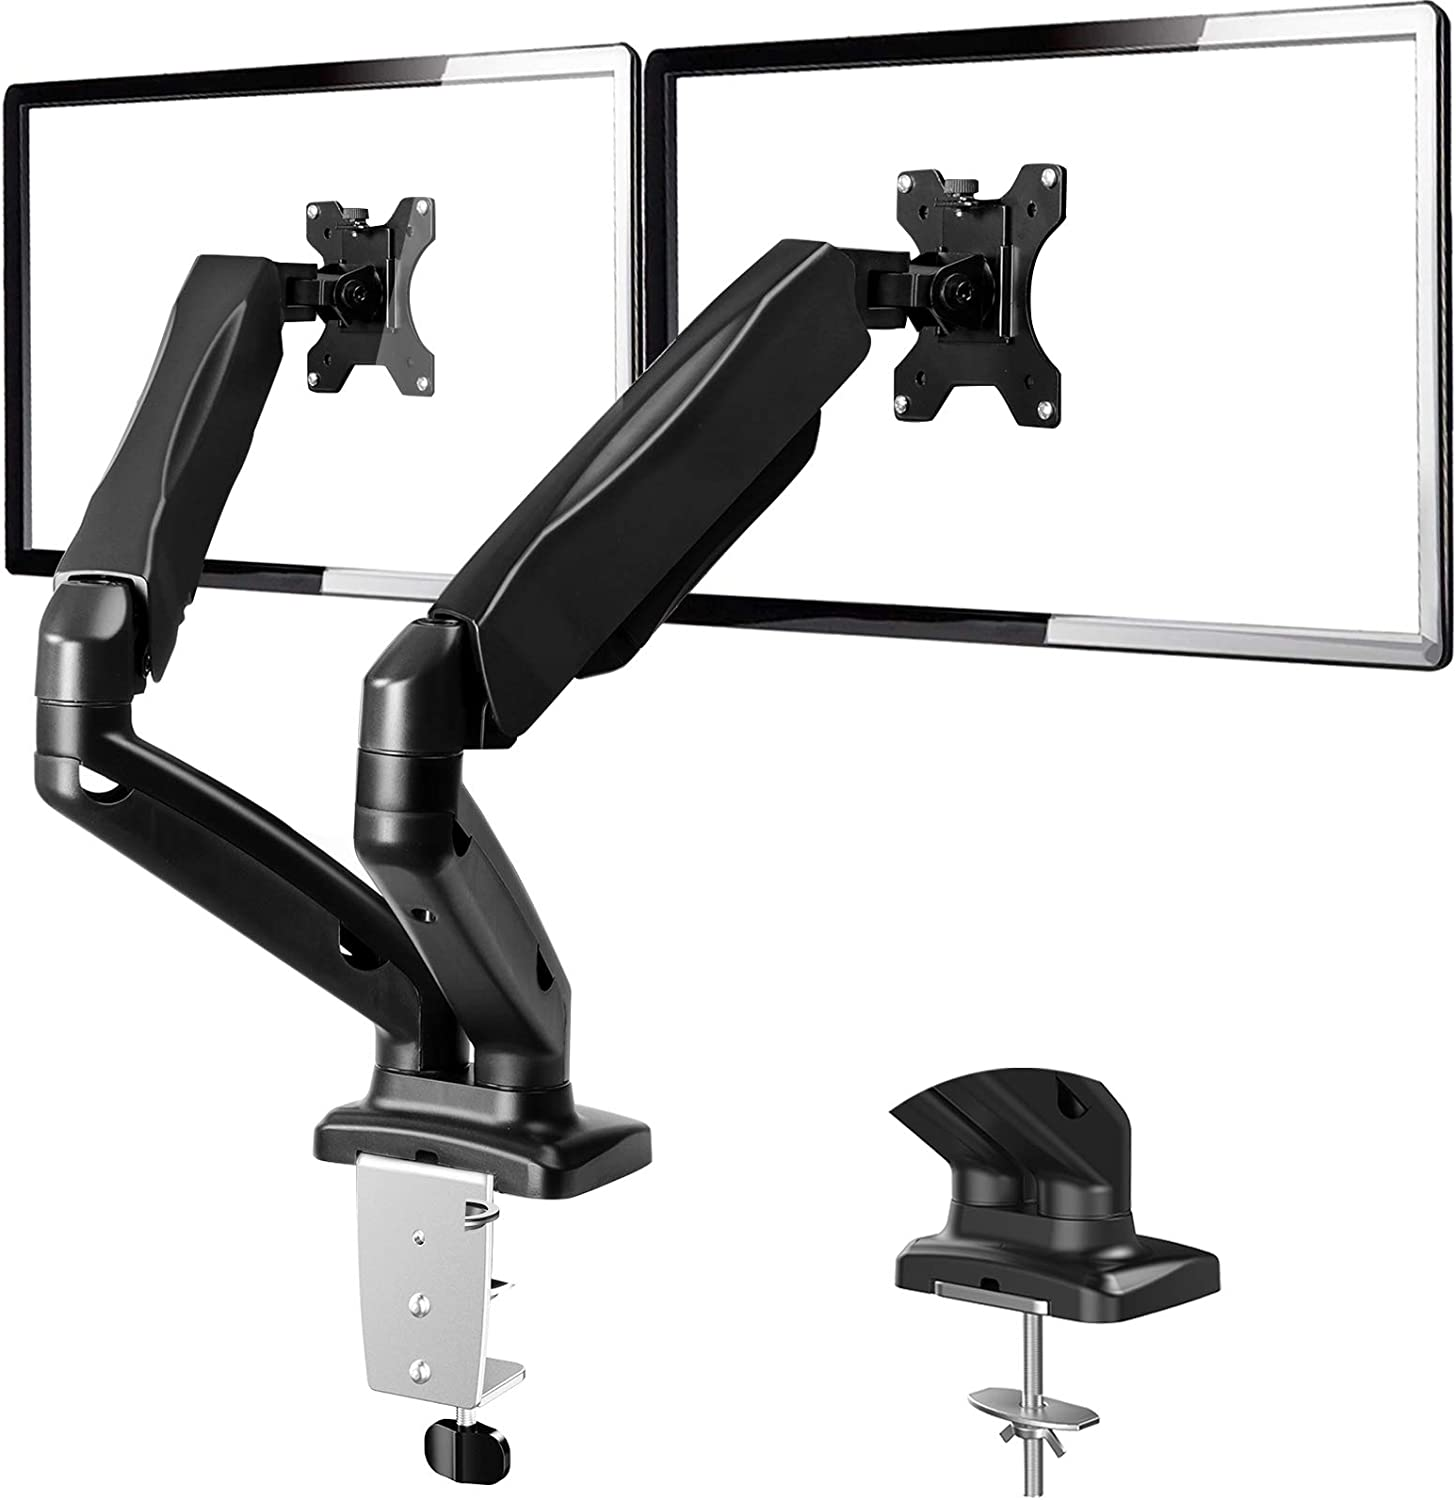 Dual Monitor Stand - Adjustable Dual Arm Monitor Mount Desk Stand for 13 to 32 Inch Screens, Each Arm Hold 4.4 to 17.6lbs